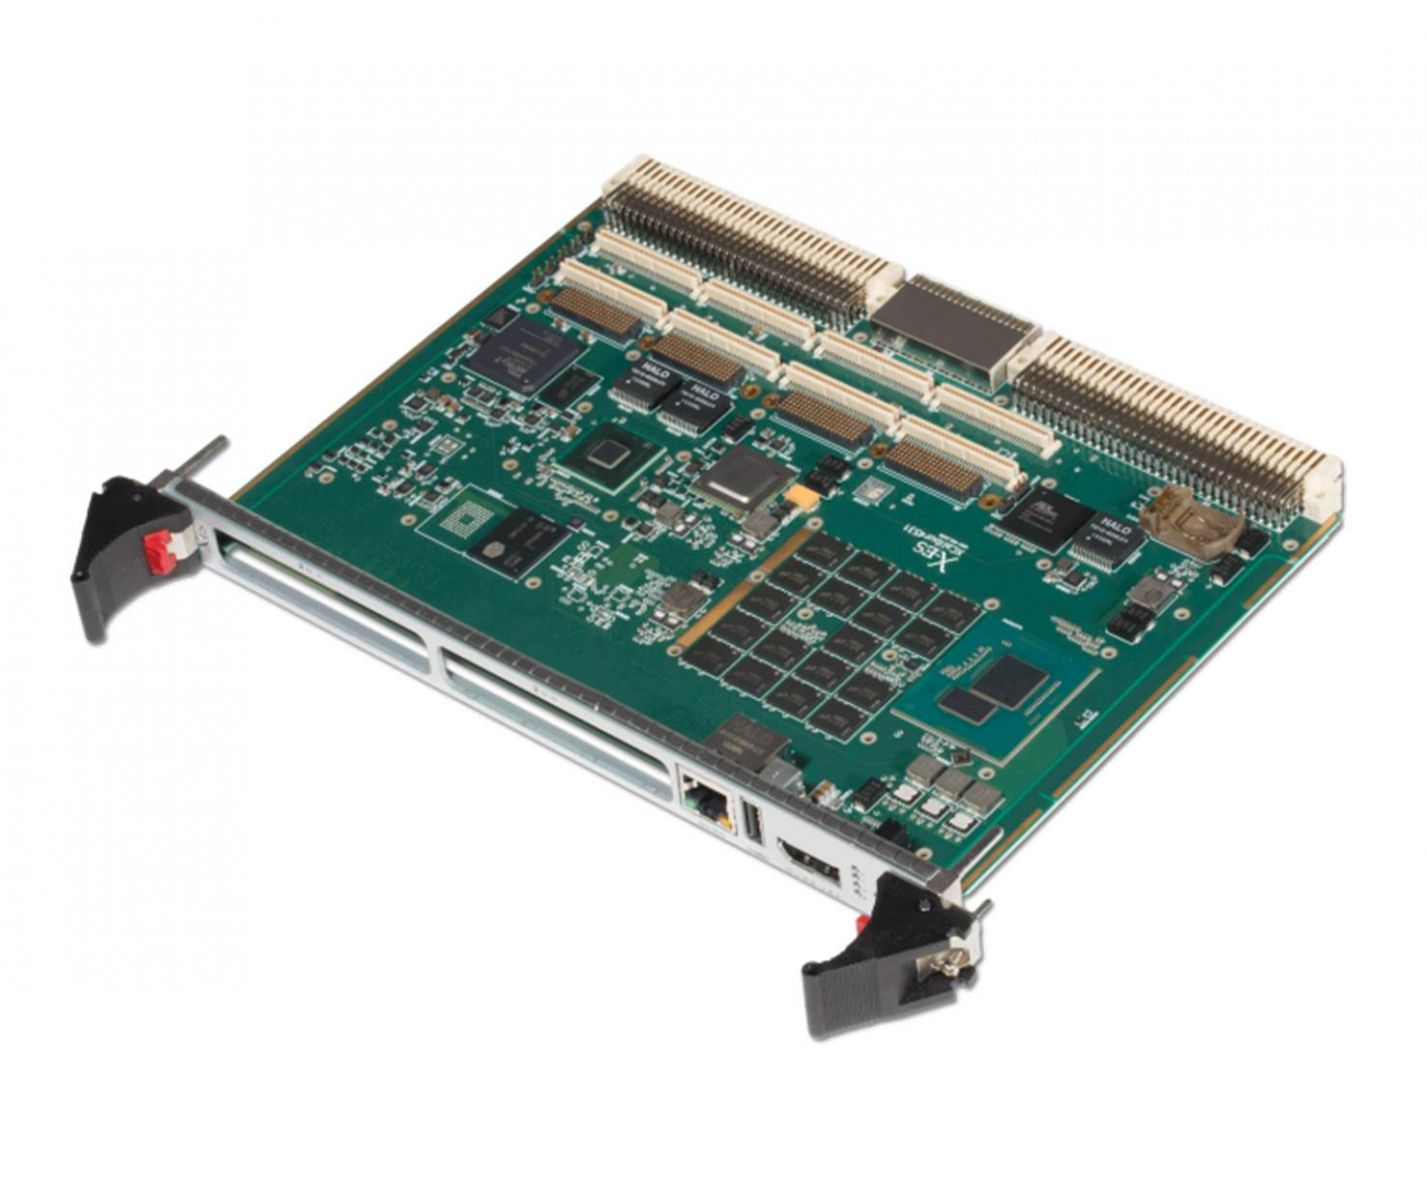 XCalibur4531  5th Generation Intel® Core™ i7 6U VME SBC featuring a Xilinx Artix-7 FPGA-based VME bridging solution.